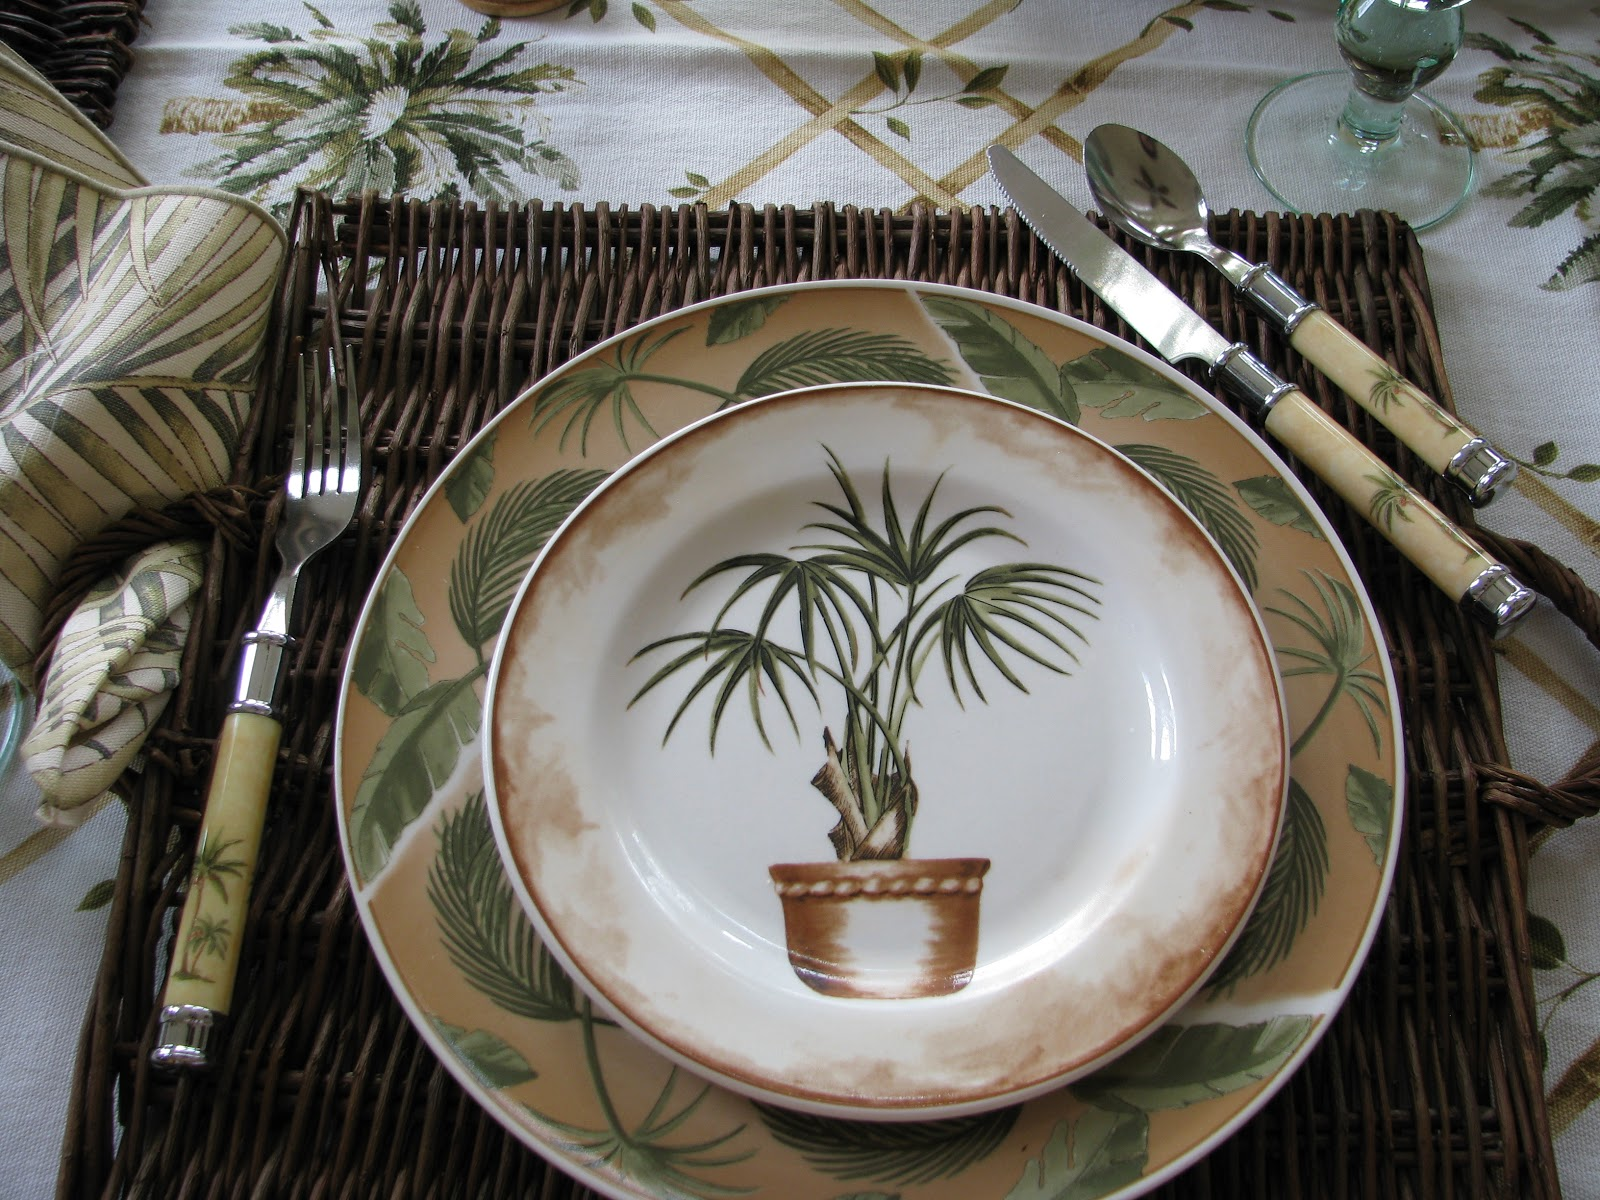 ~~~A Casual Dinner Setting!!!~~~ & Designs by Pinky: ~~~A Casual Dinner Setting!!!~~~